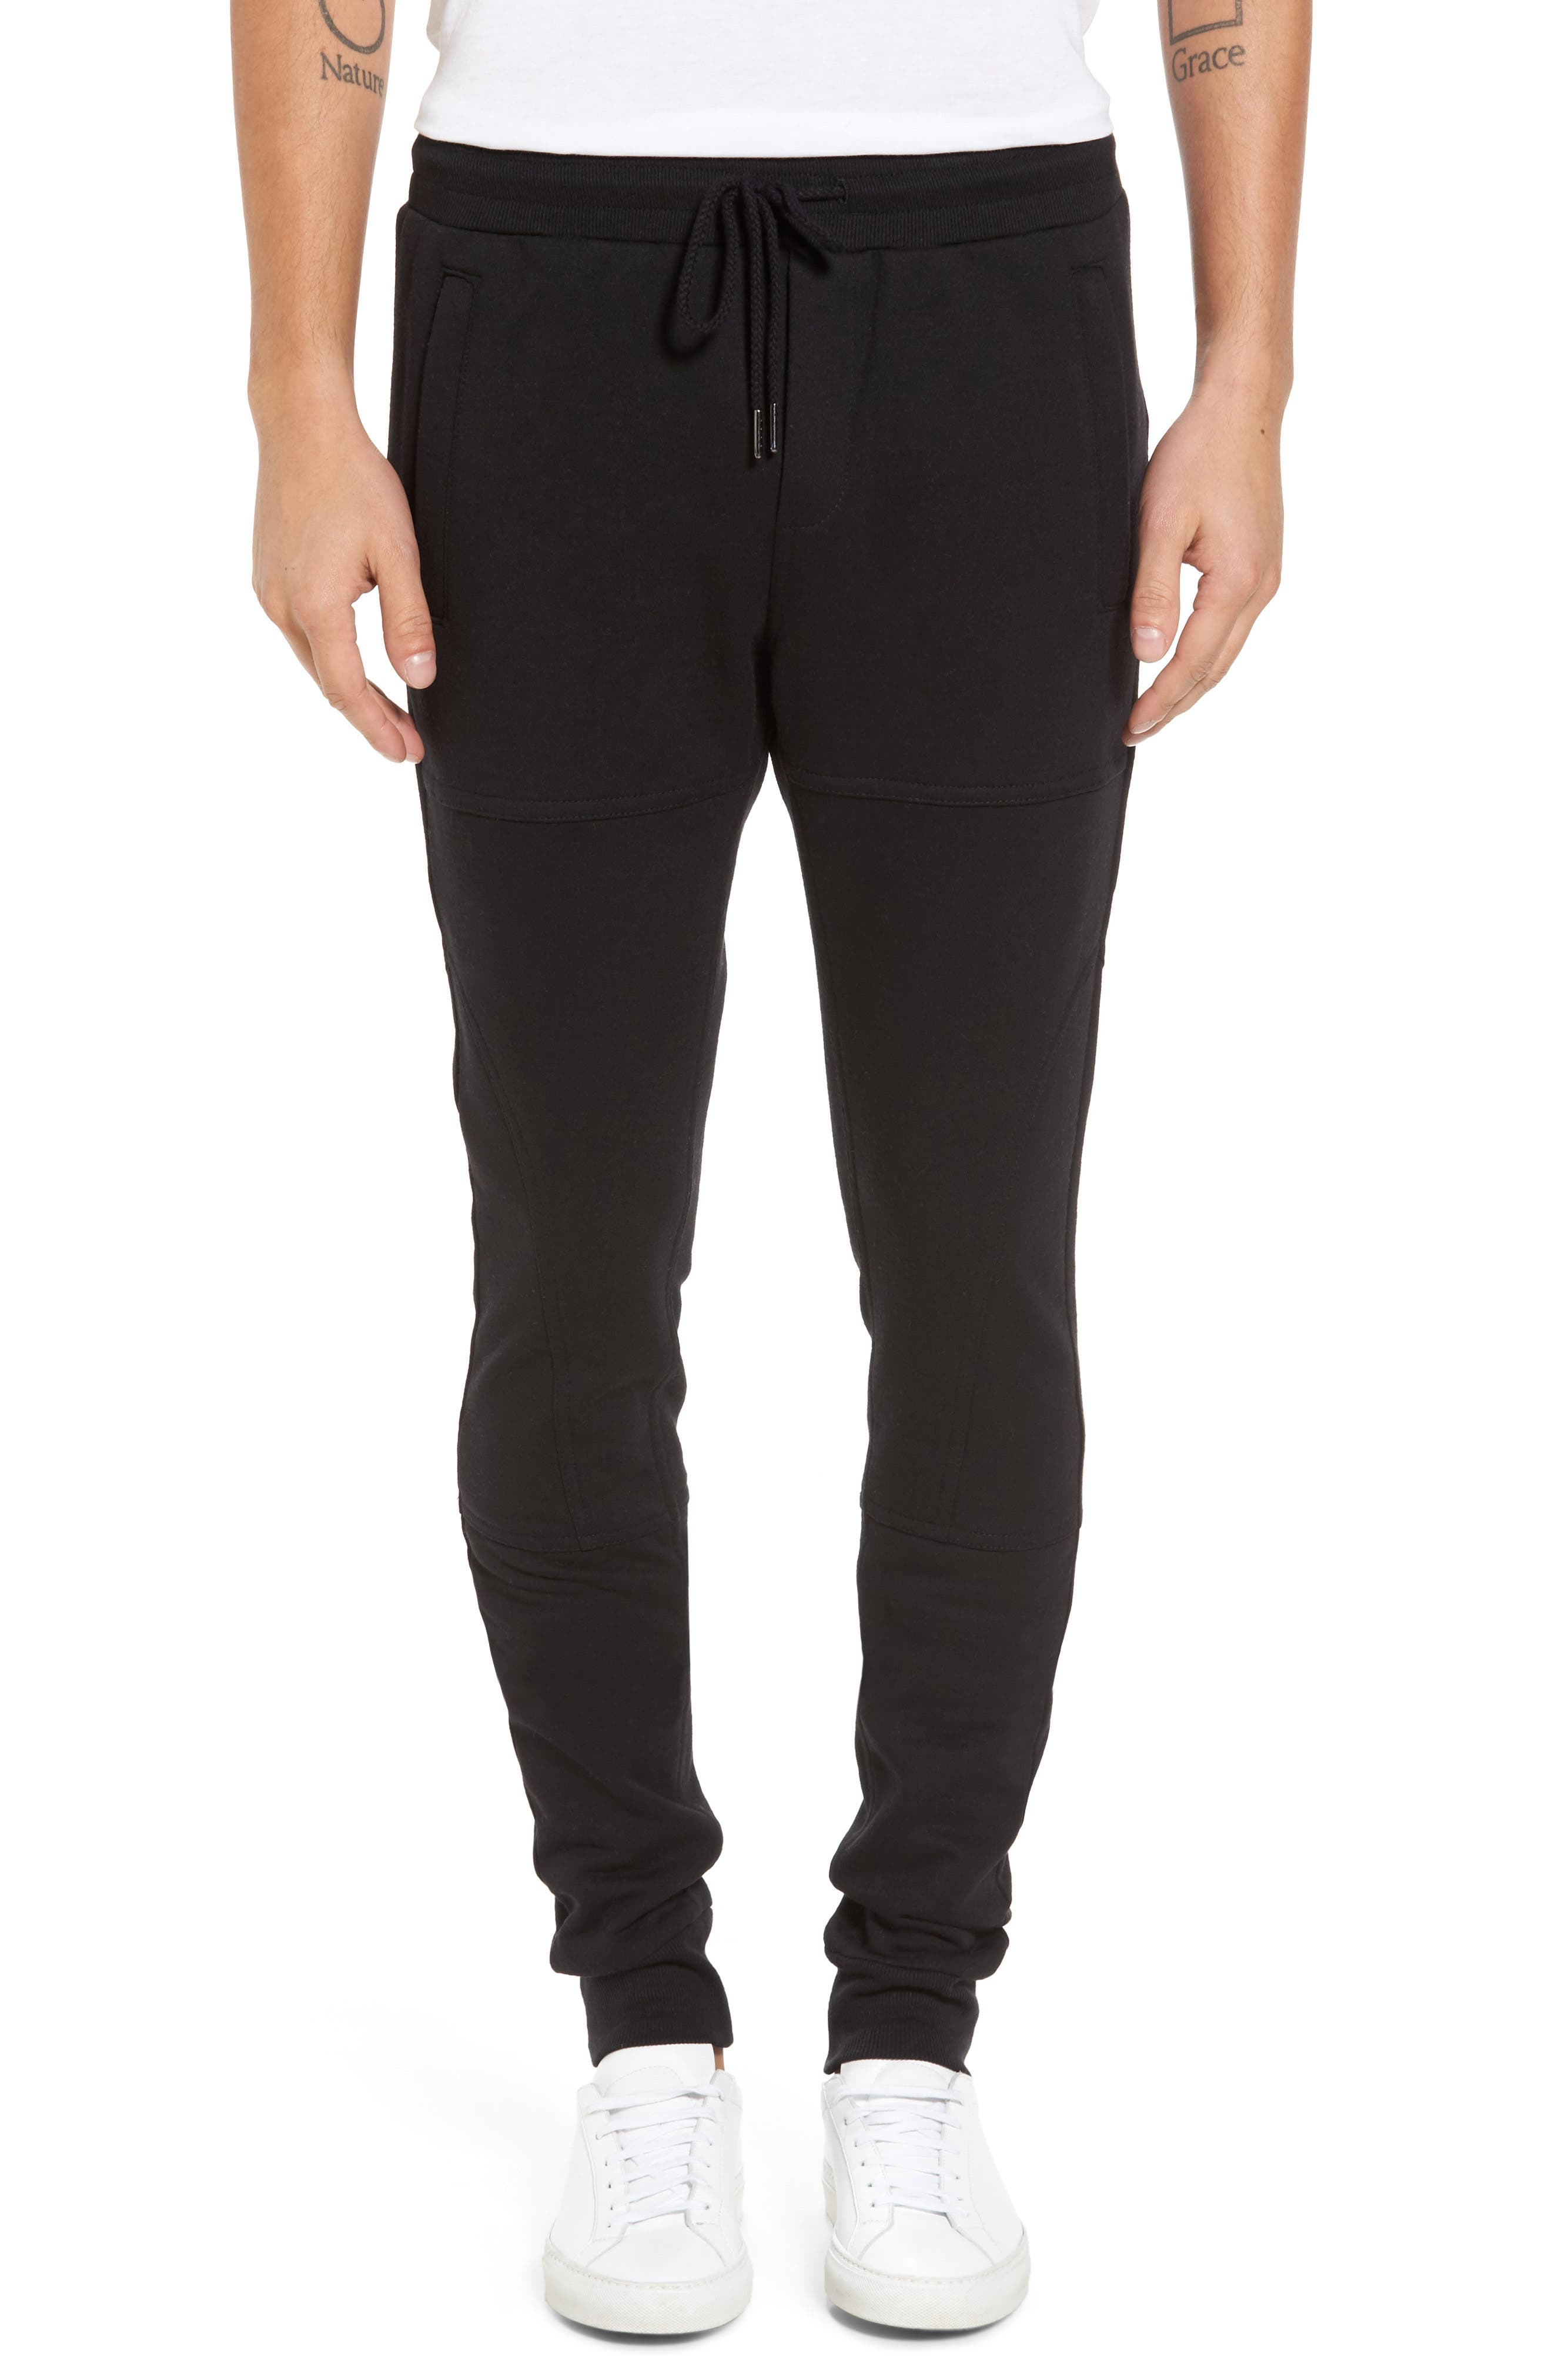 French Terry Sweatpants,                         Main,                         color, 001